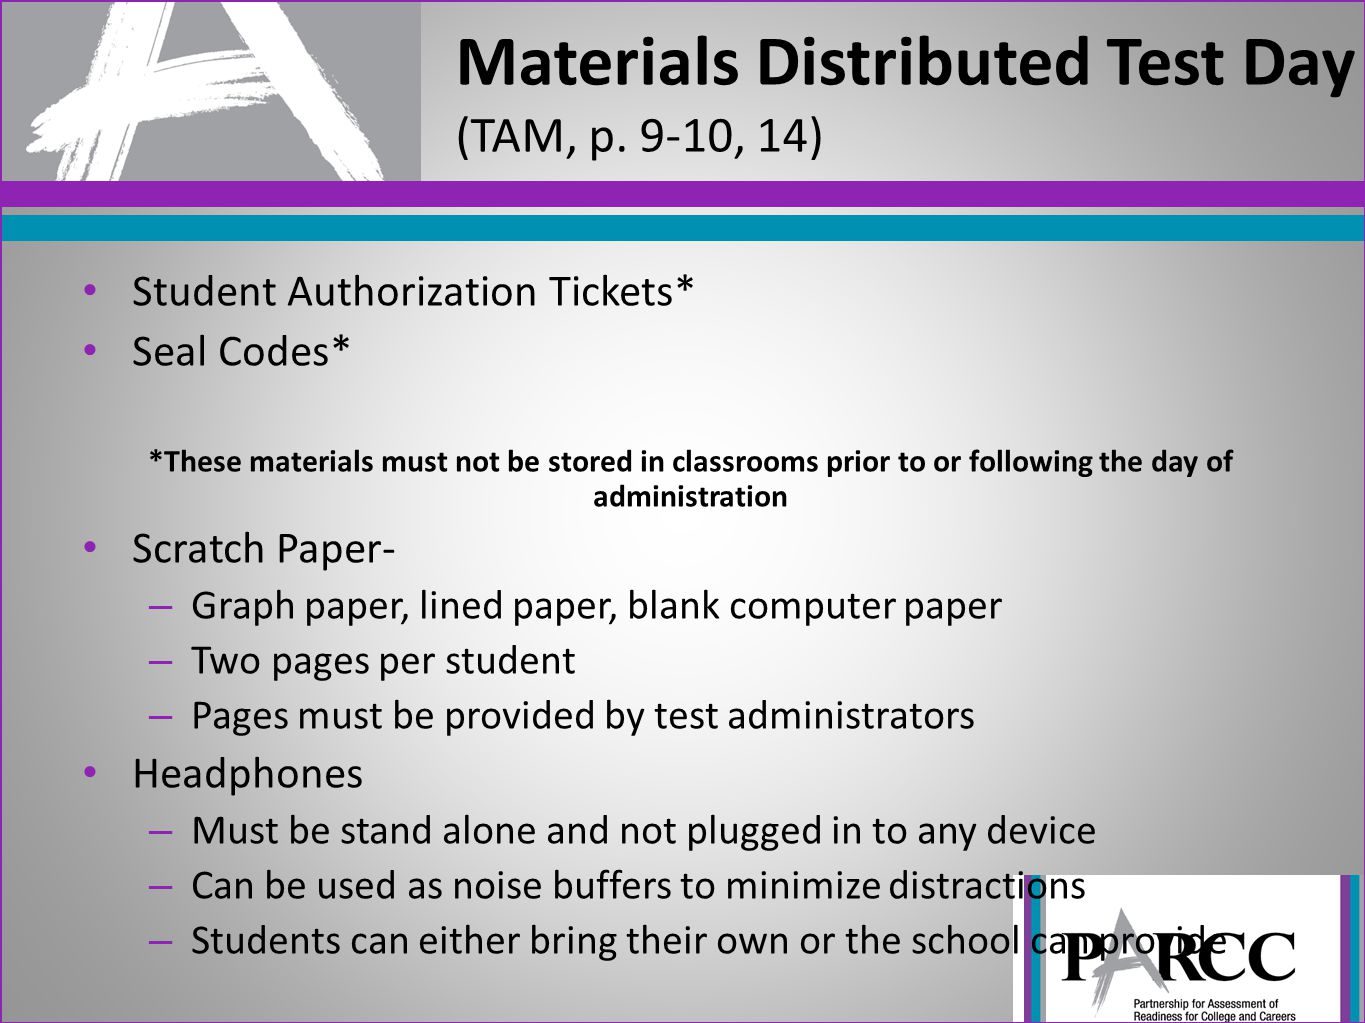 Student Authorization Tickets* Seal Codes* *These materials must not be stored in classrooms prior to or following the day of administration Scratch Paper- – Graph paper, lined paper, blank computer paper – Two pages per student – Pages must be provided by test administrators Headphones – Must be stand alone and not plugged in to any device – Can be used as noise buffers to minimize distractions – Students can either bring their own or the school can provide Materials Distributed Test Day (TAM, p.